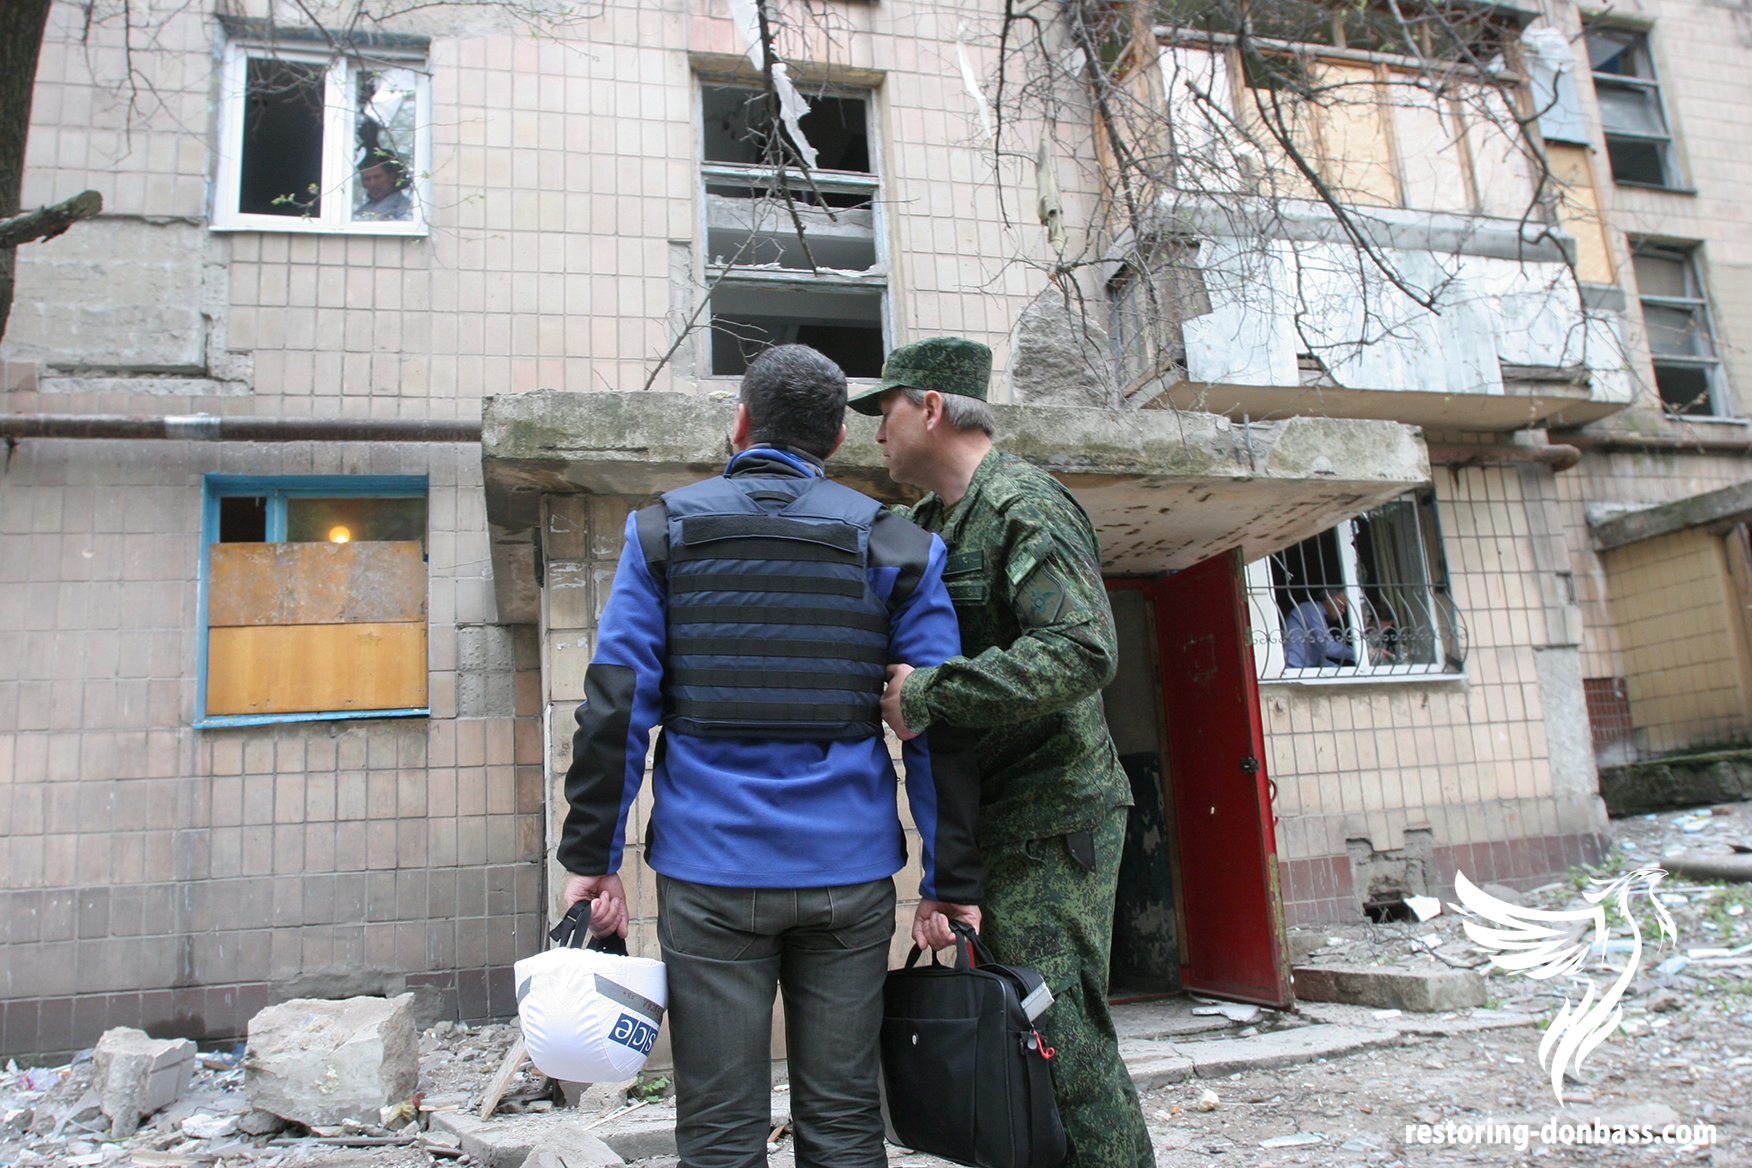 The representative of the OSCE mission examines the result of the shelling of house in Donetsk, May 3, 2015